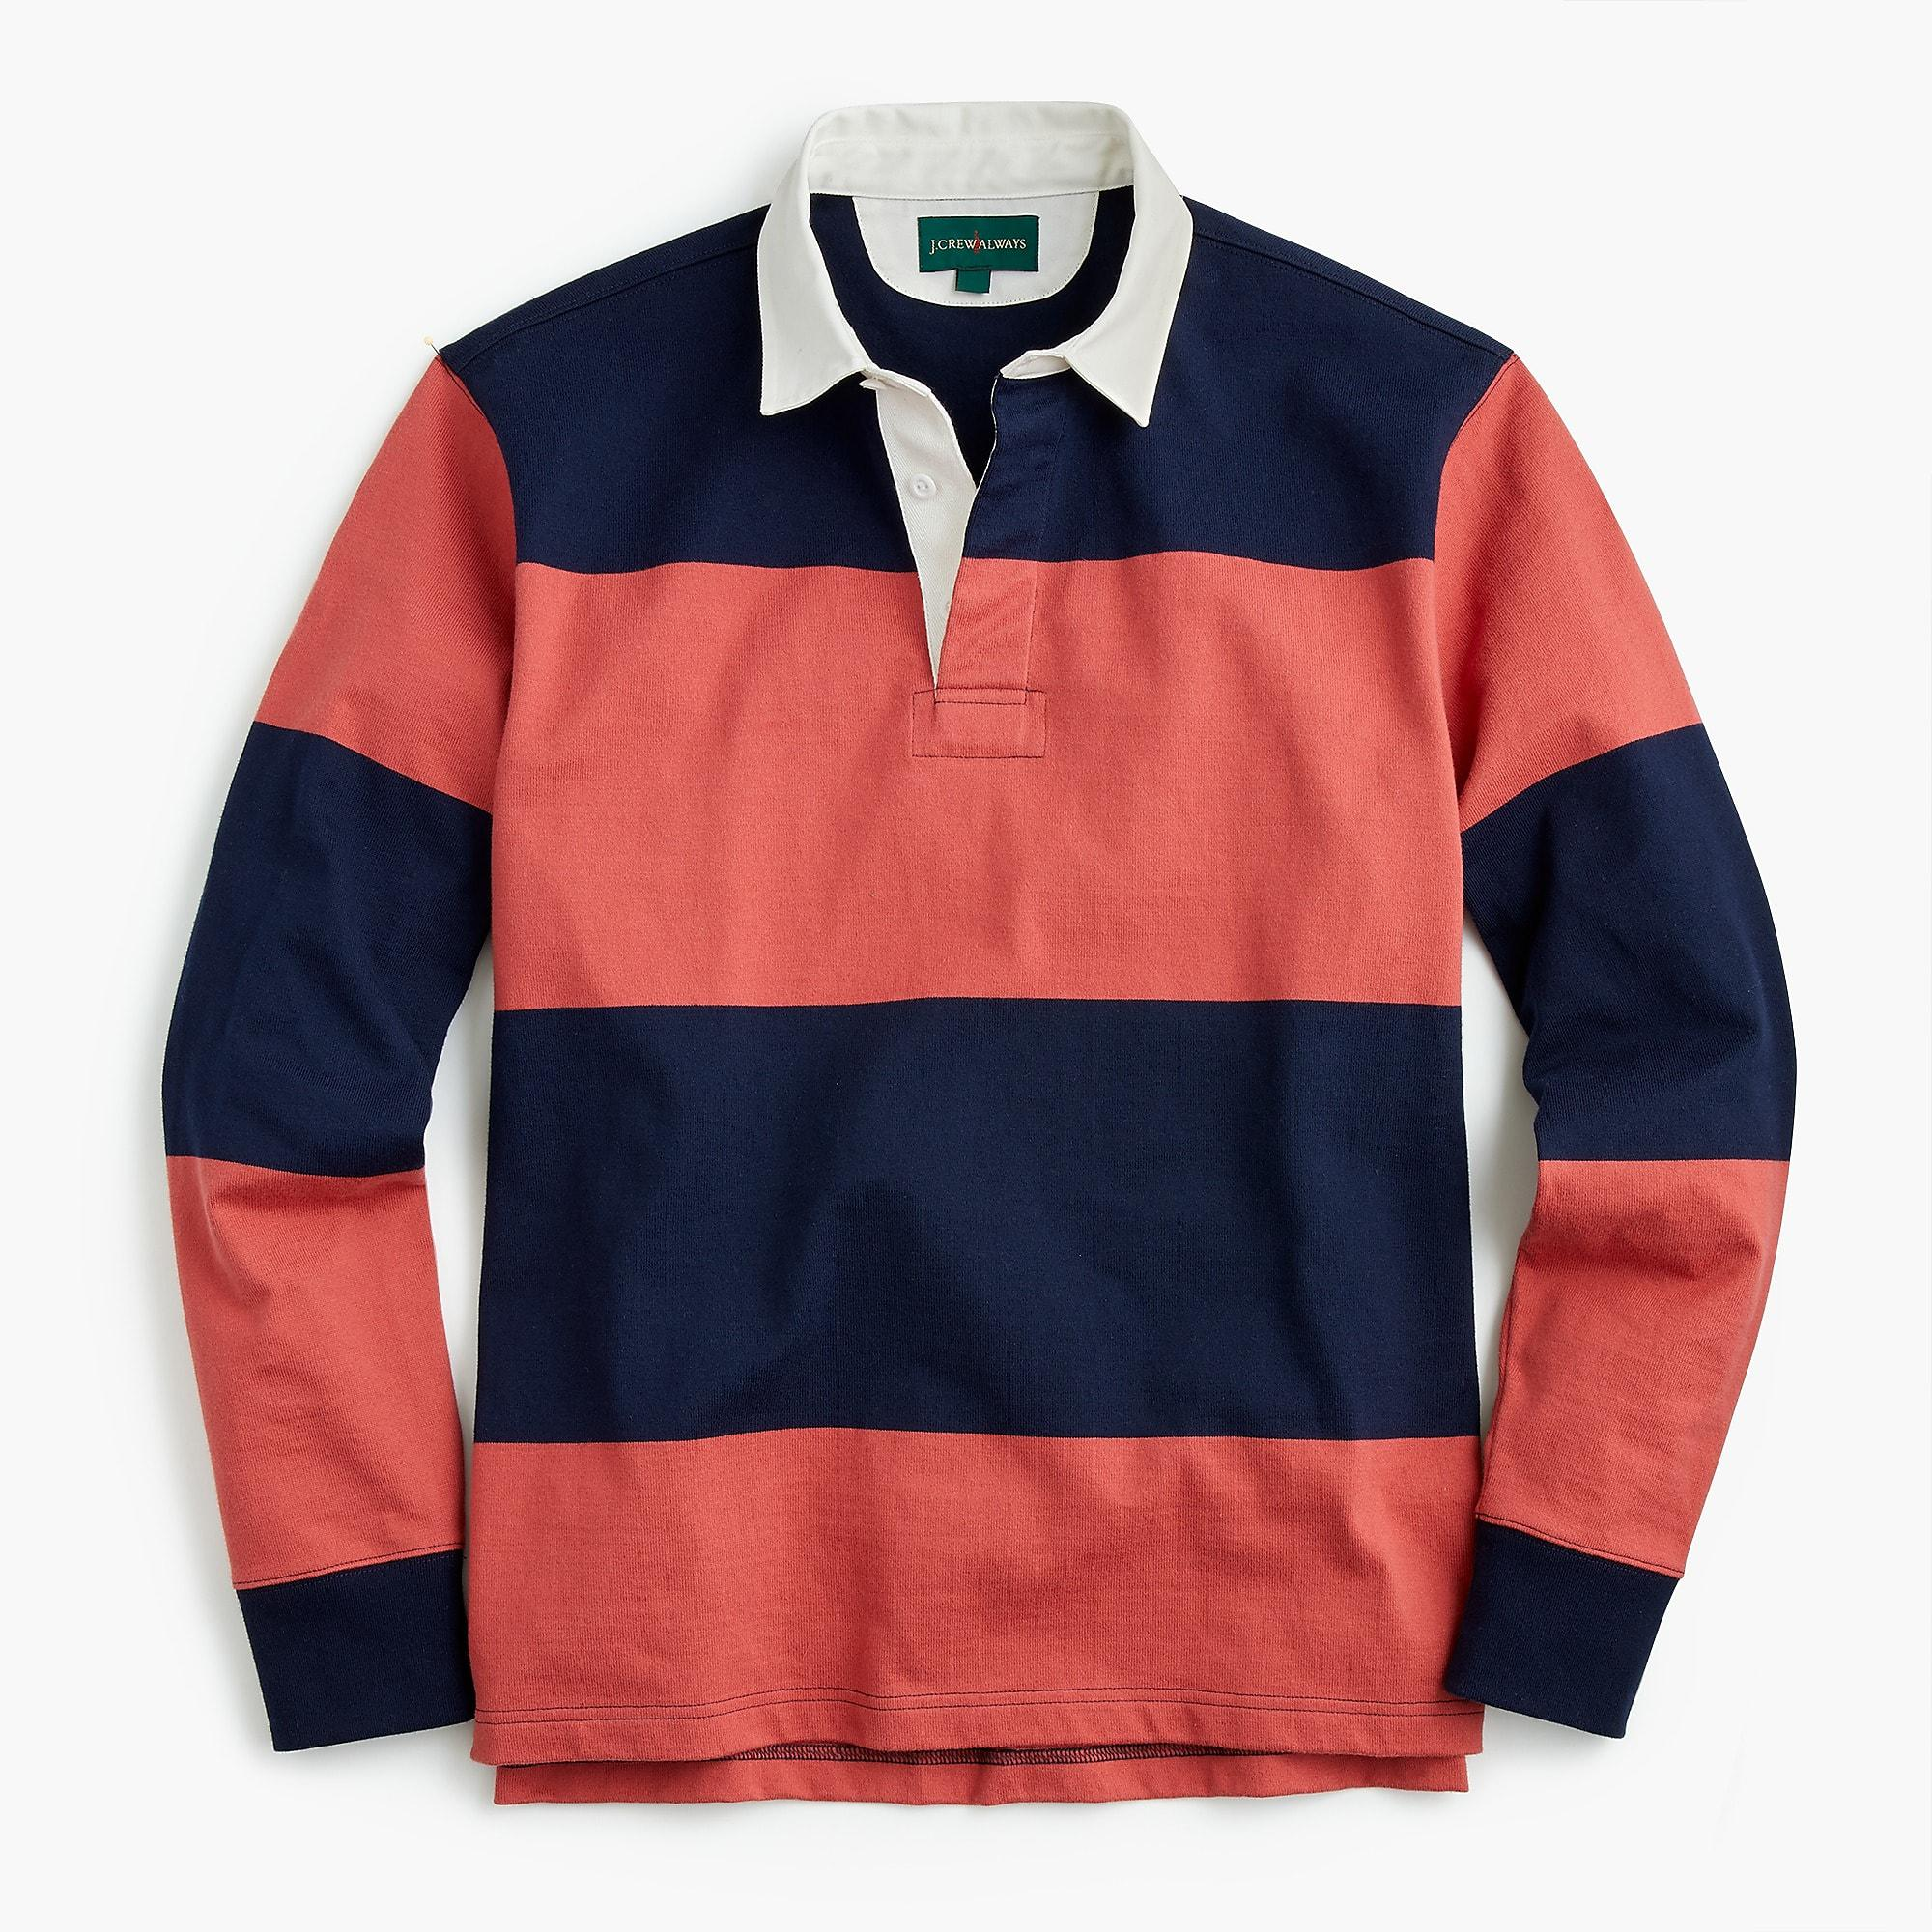 21830814139 J.Crew 1984 Rugby Shirt In Broad Stripe in Red for Men - Lyst